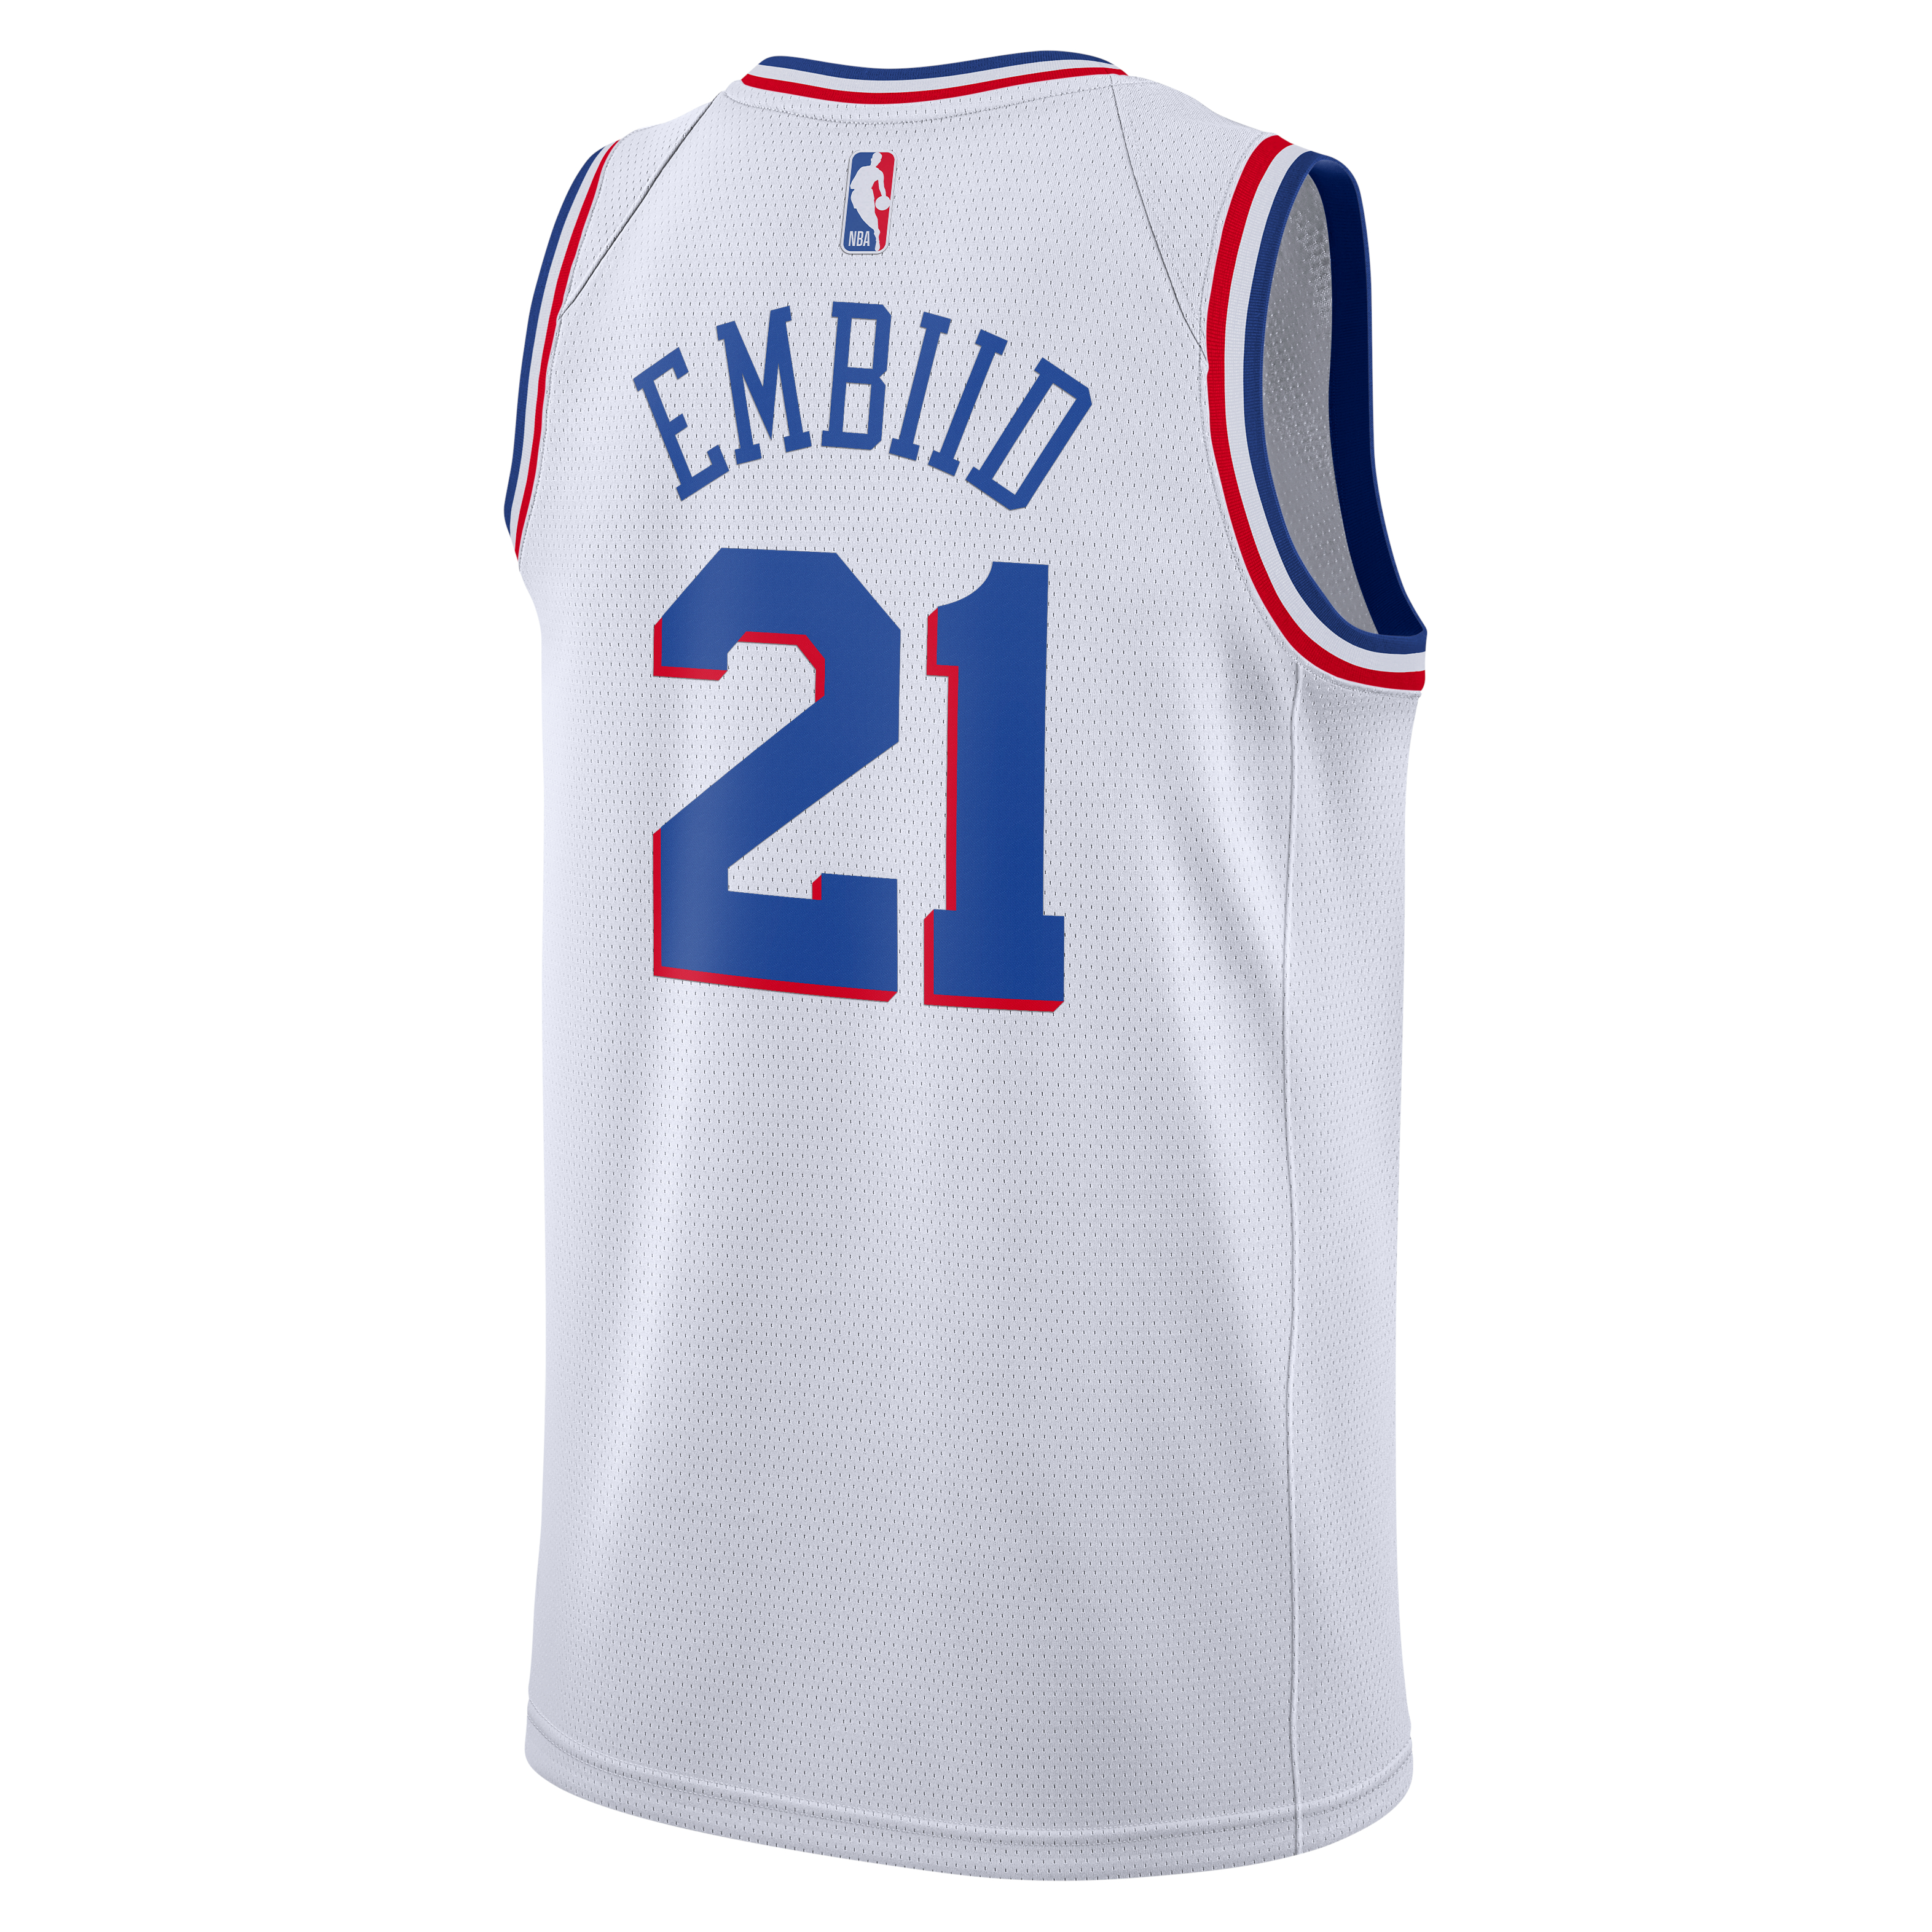 ae96e7ad1 Philadelphia 76ers Men s White Joel Embiid Earned Edition Swingman Jersey  by Nike